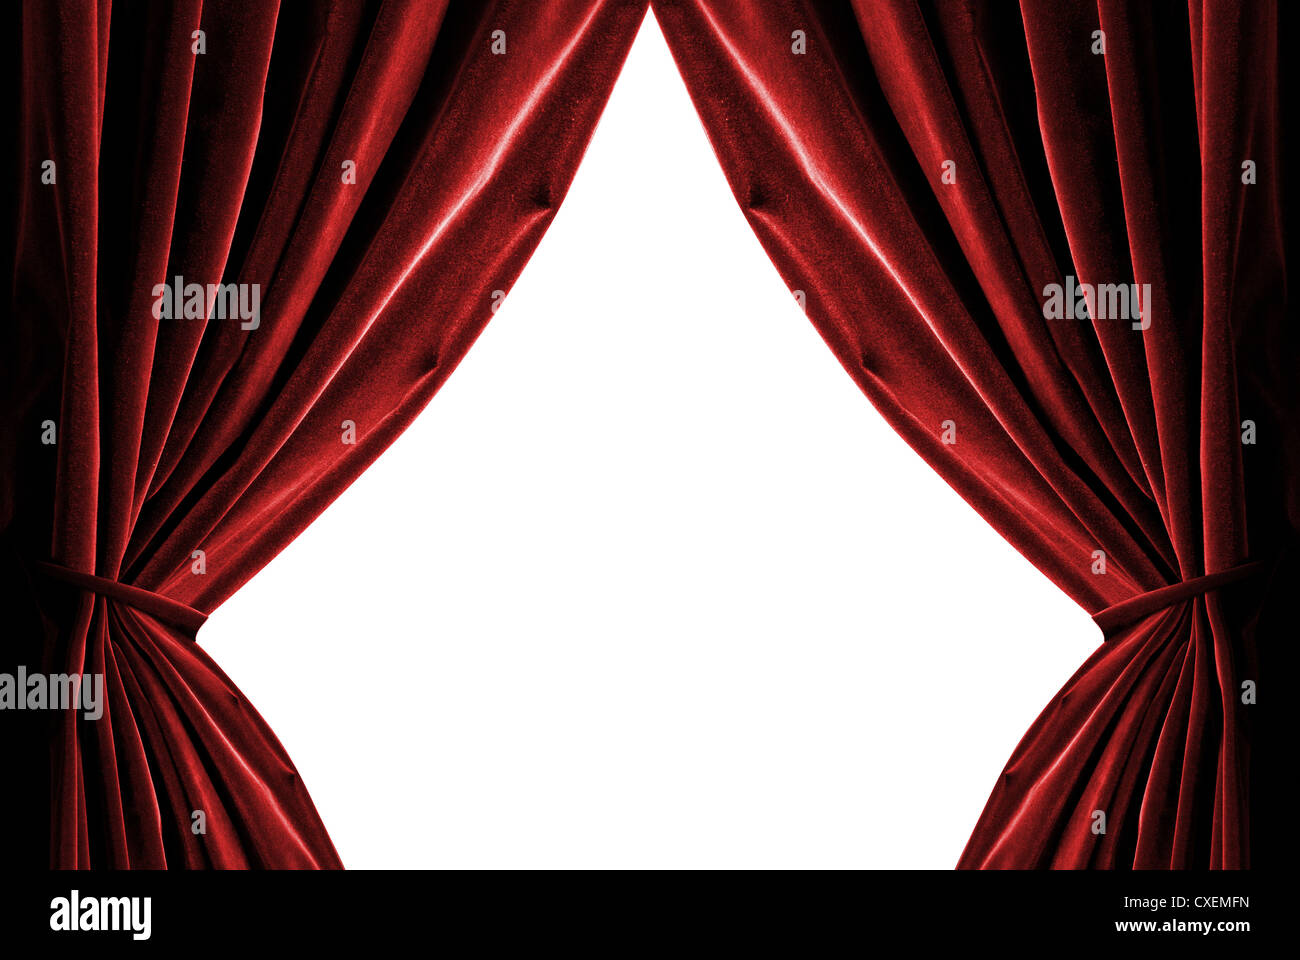 violet curtains isolated on white - Stock Image